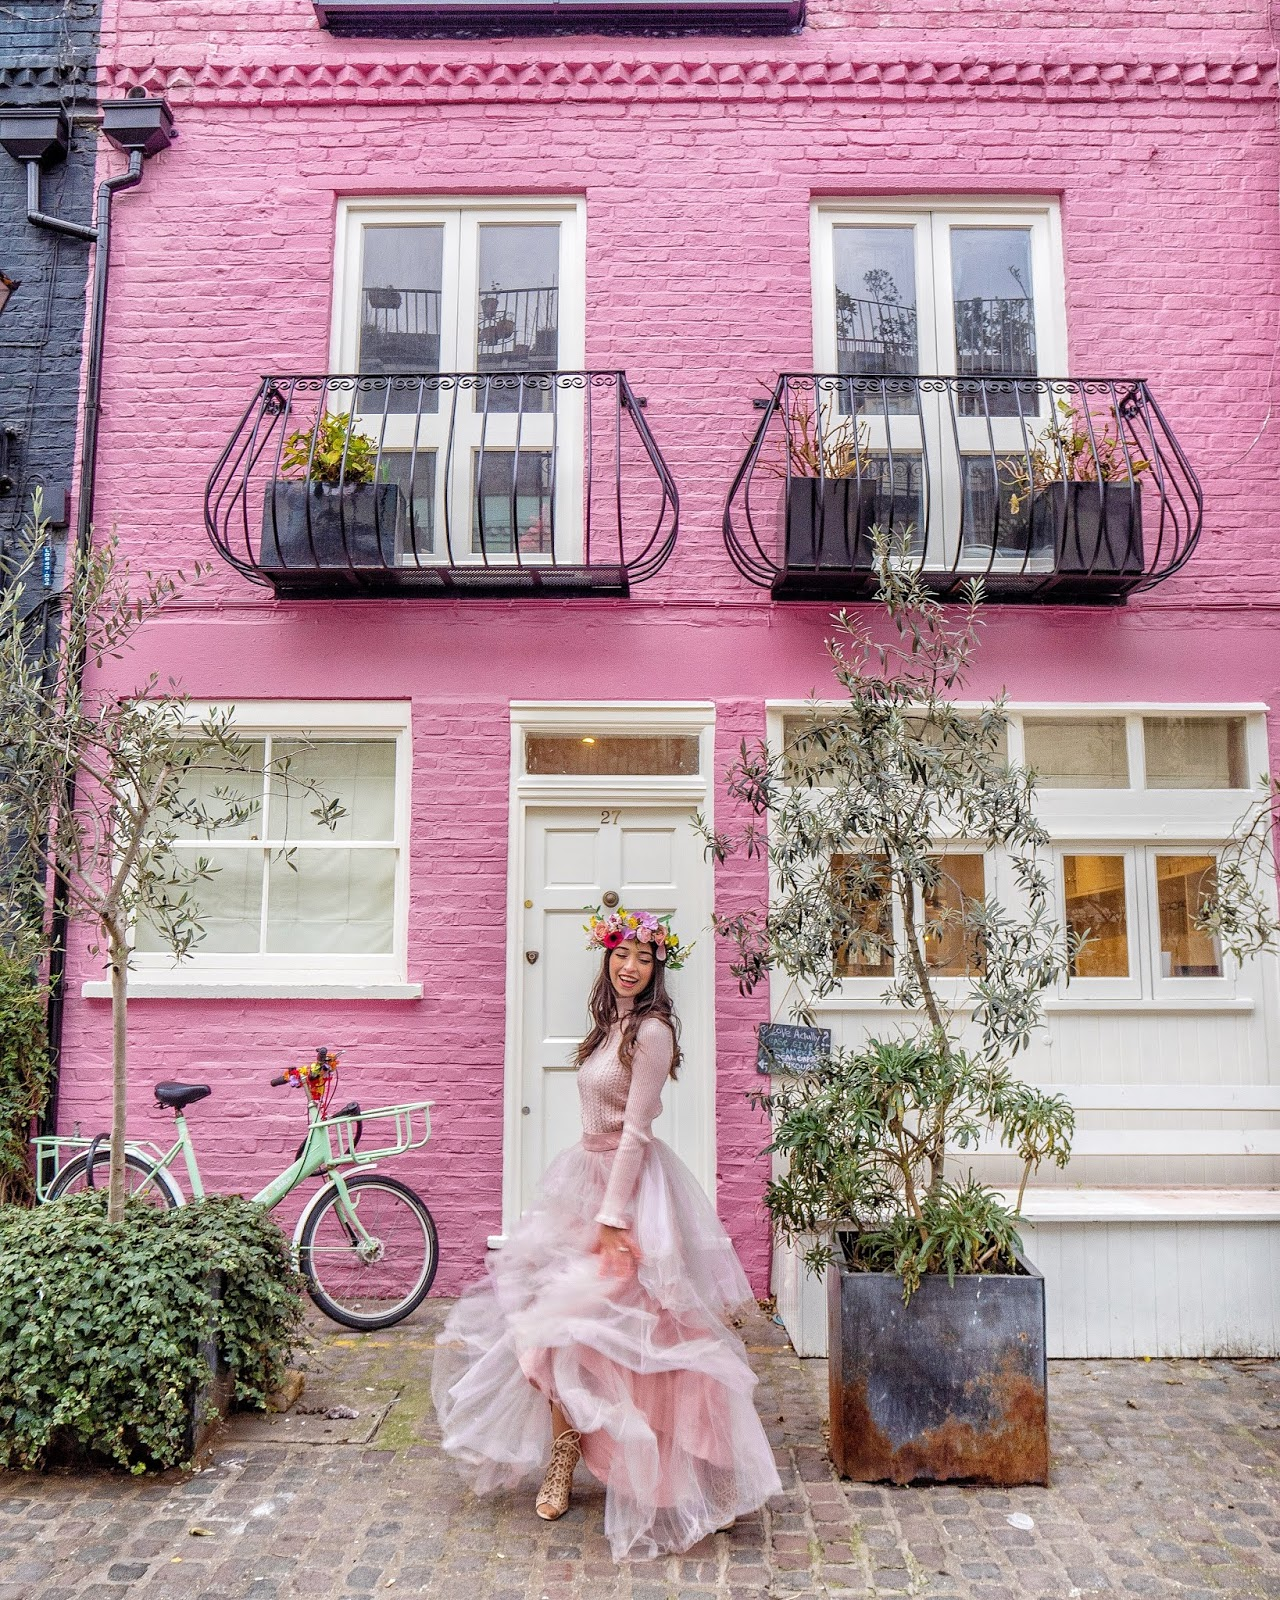 8b347b8e39c My Top 10 Pink Instagrammable Places in London